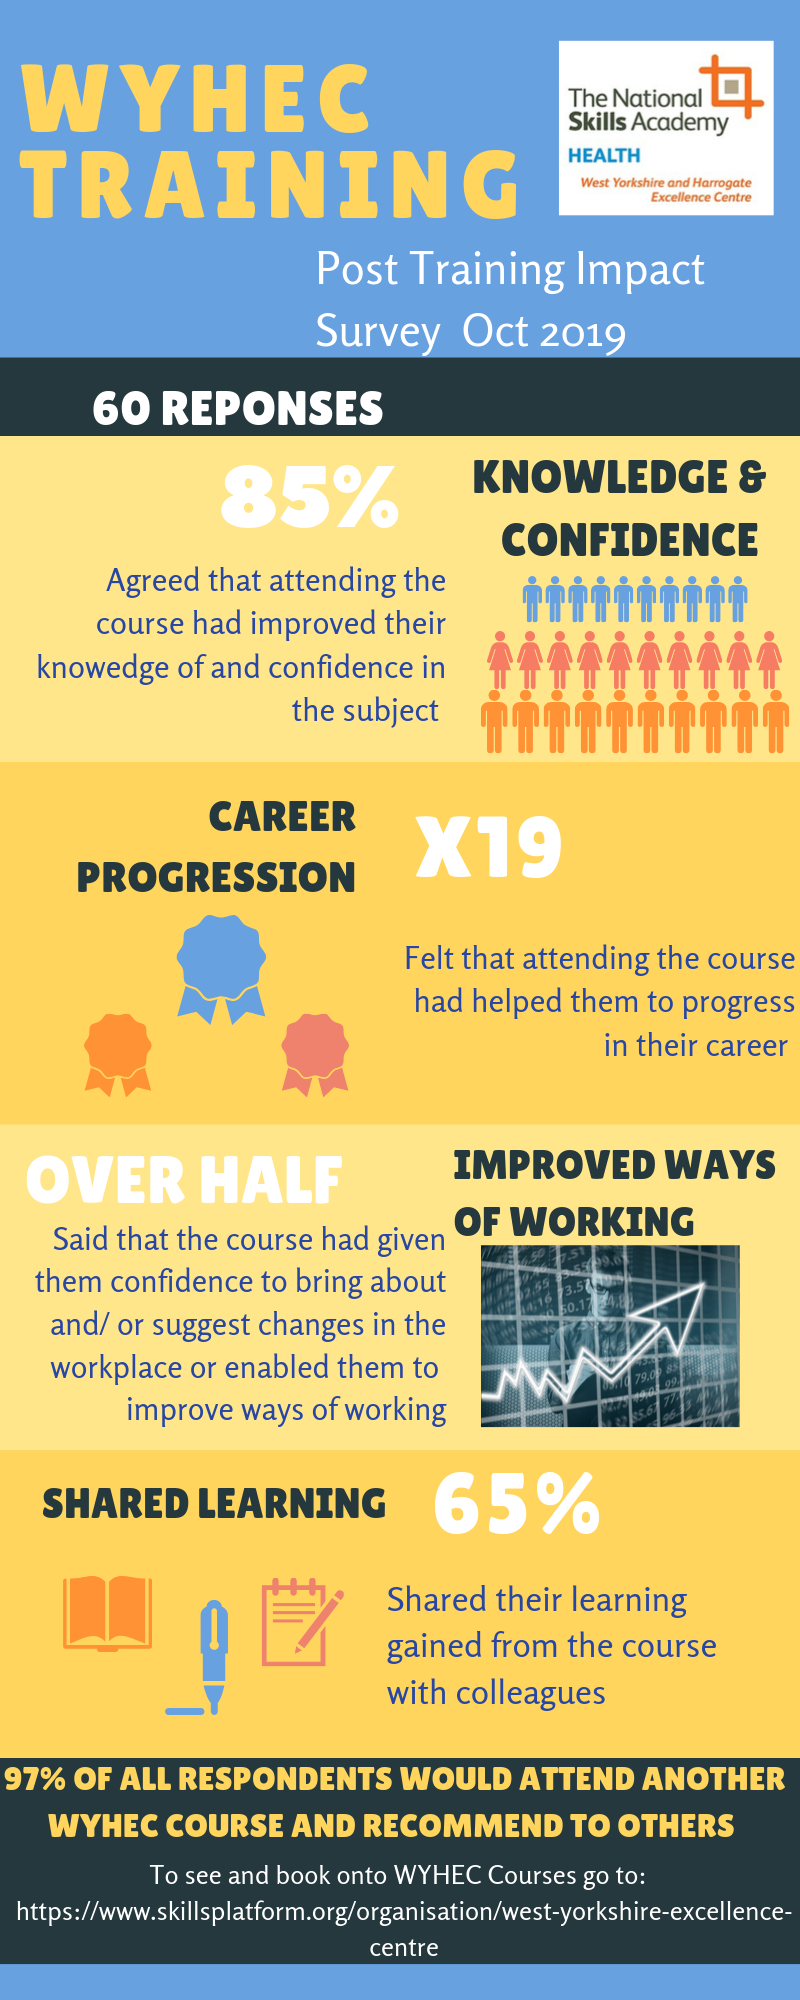 WYHEC training impact survey infographic.png